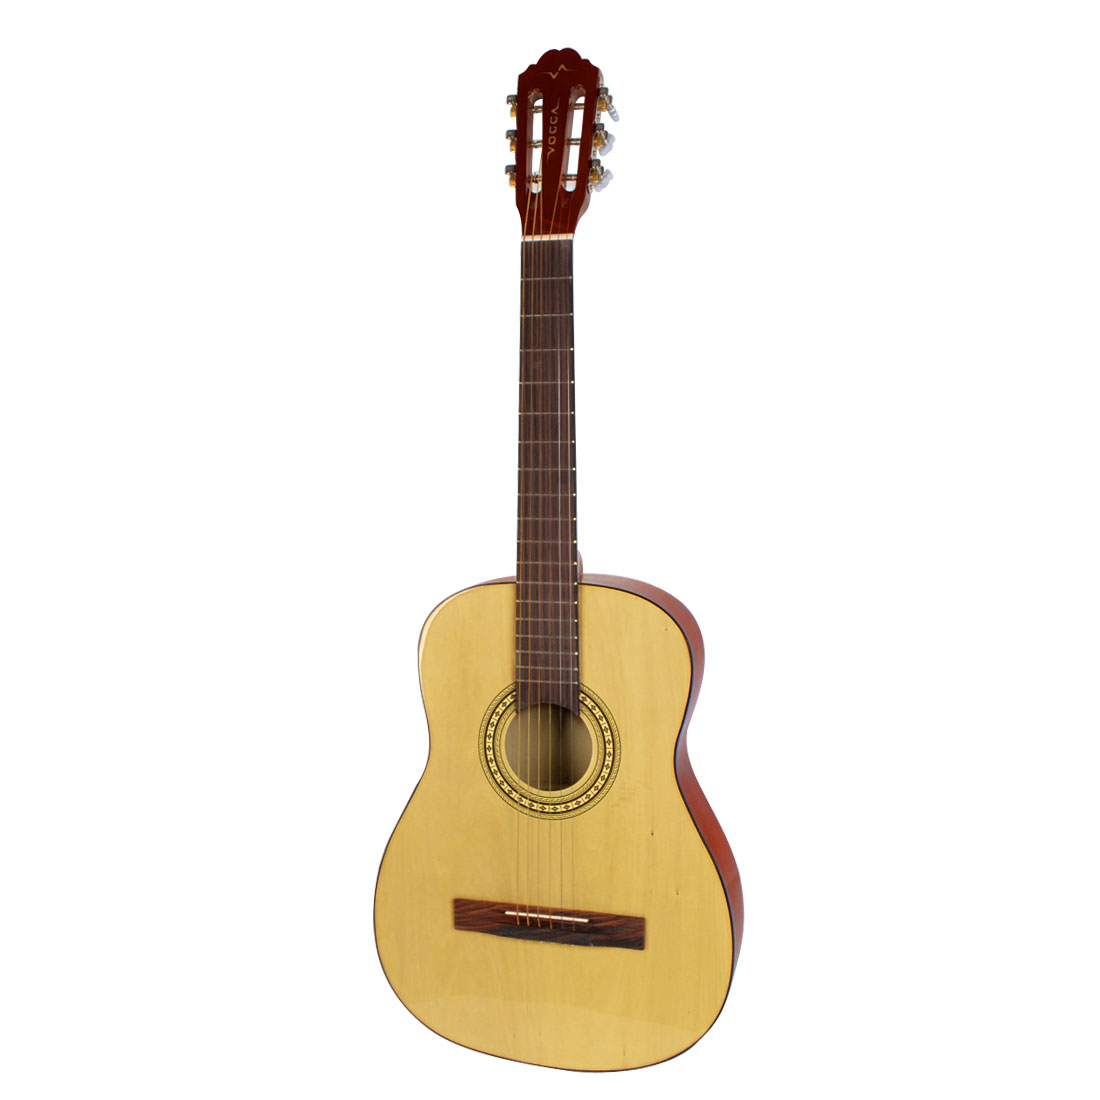 Brown Beige Wooden Body 6 Strings 96.5cm Length Musical Acoustic Guitar